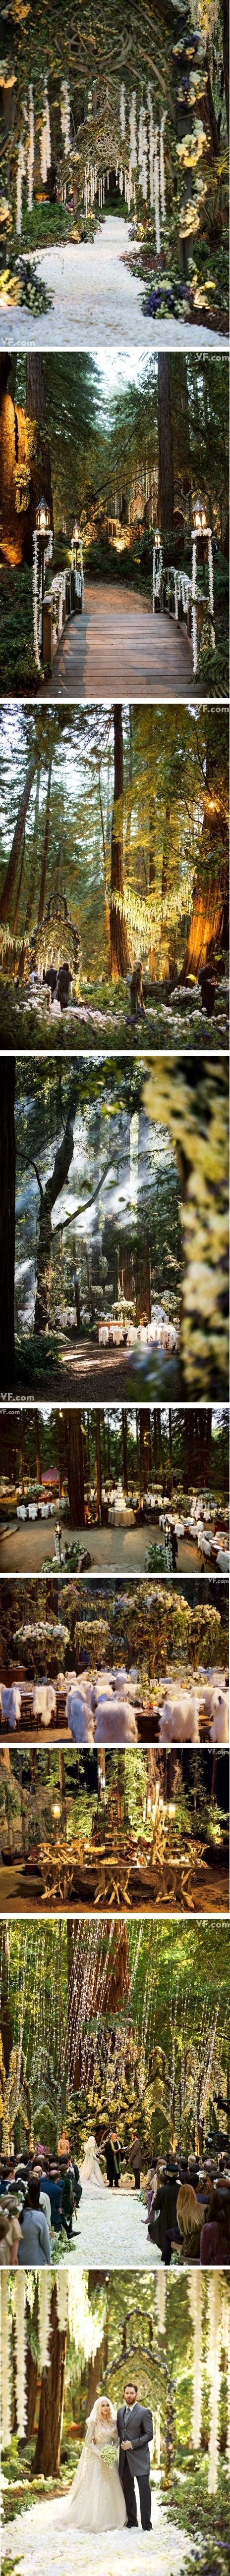 elvish wedding from heaven. Damn good things to look at. Nothing but the forest though is what I would use. I am just shocked there are people who can afford to have weddings like this.